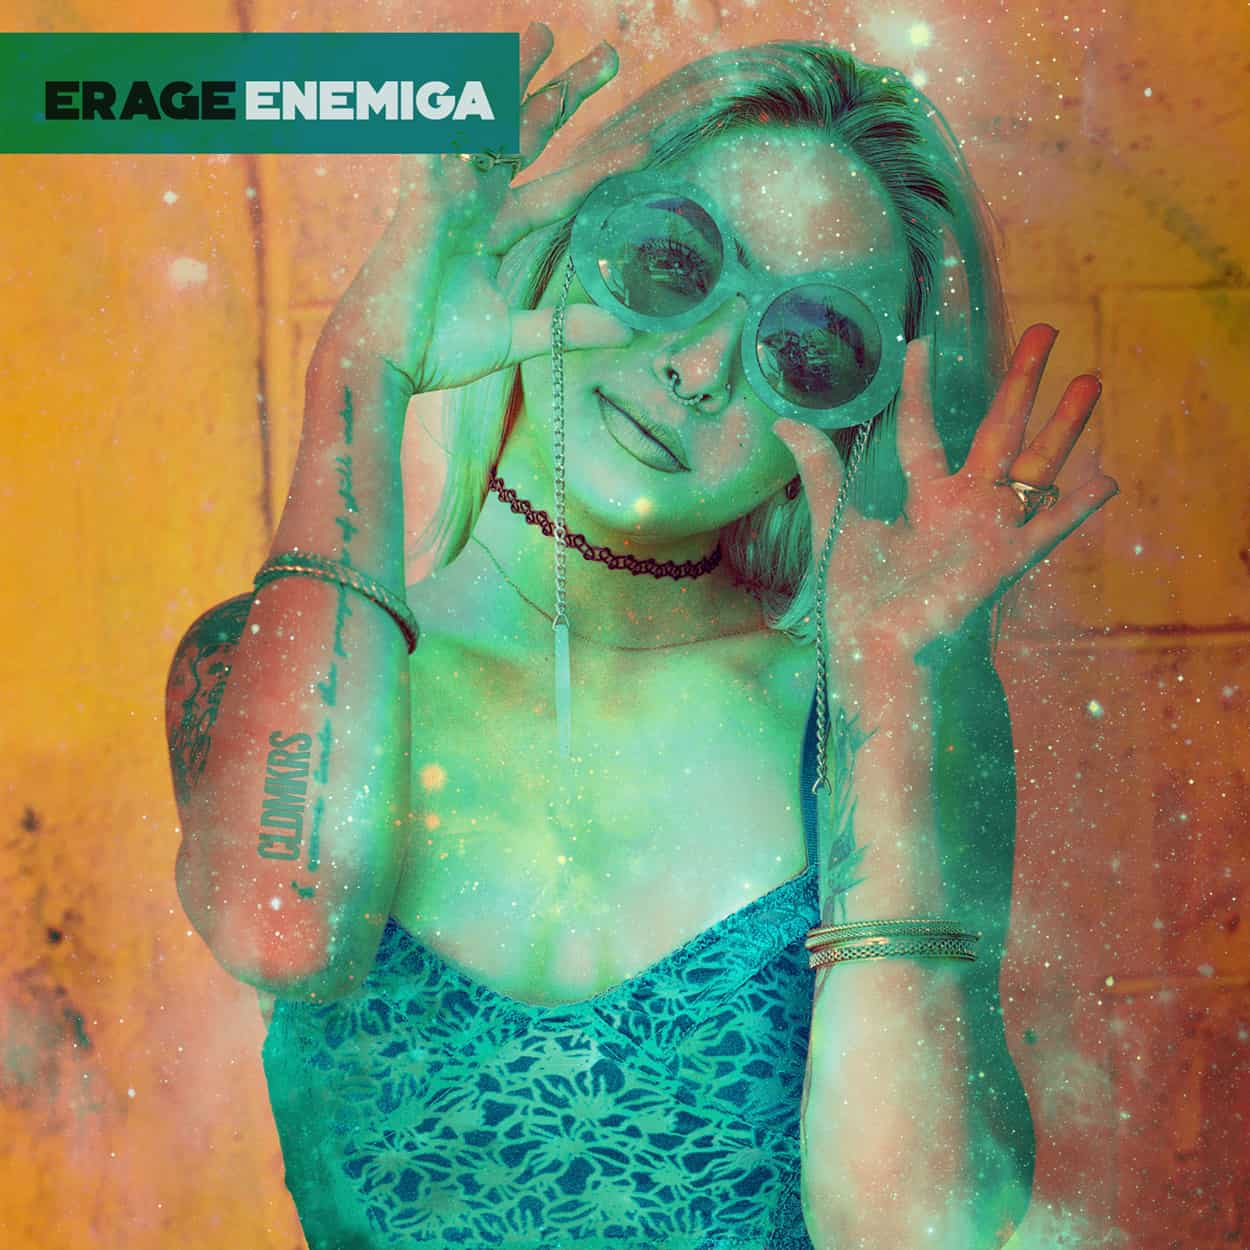 erage - enemiga - album art design